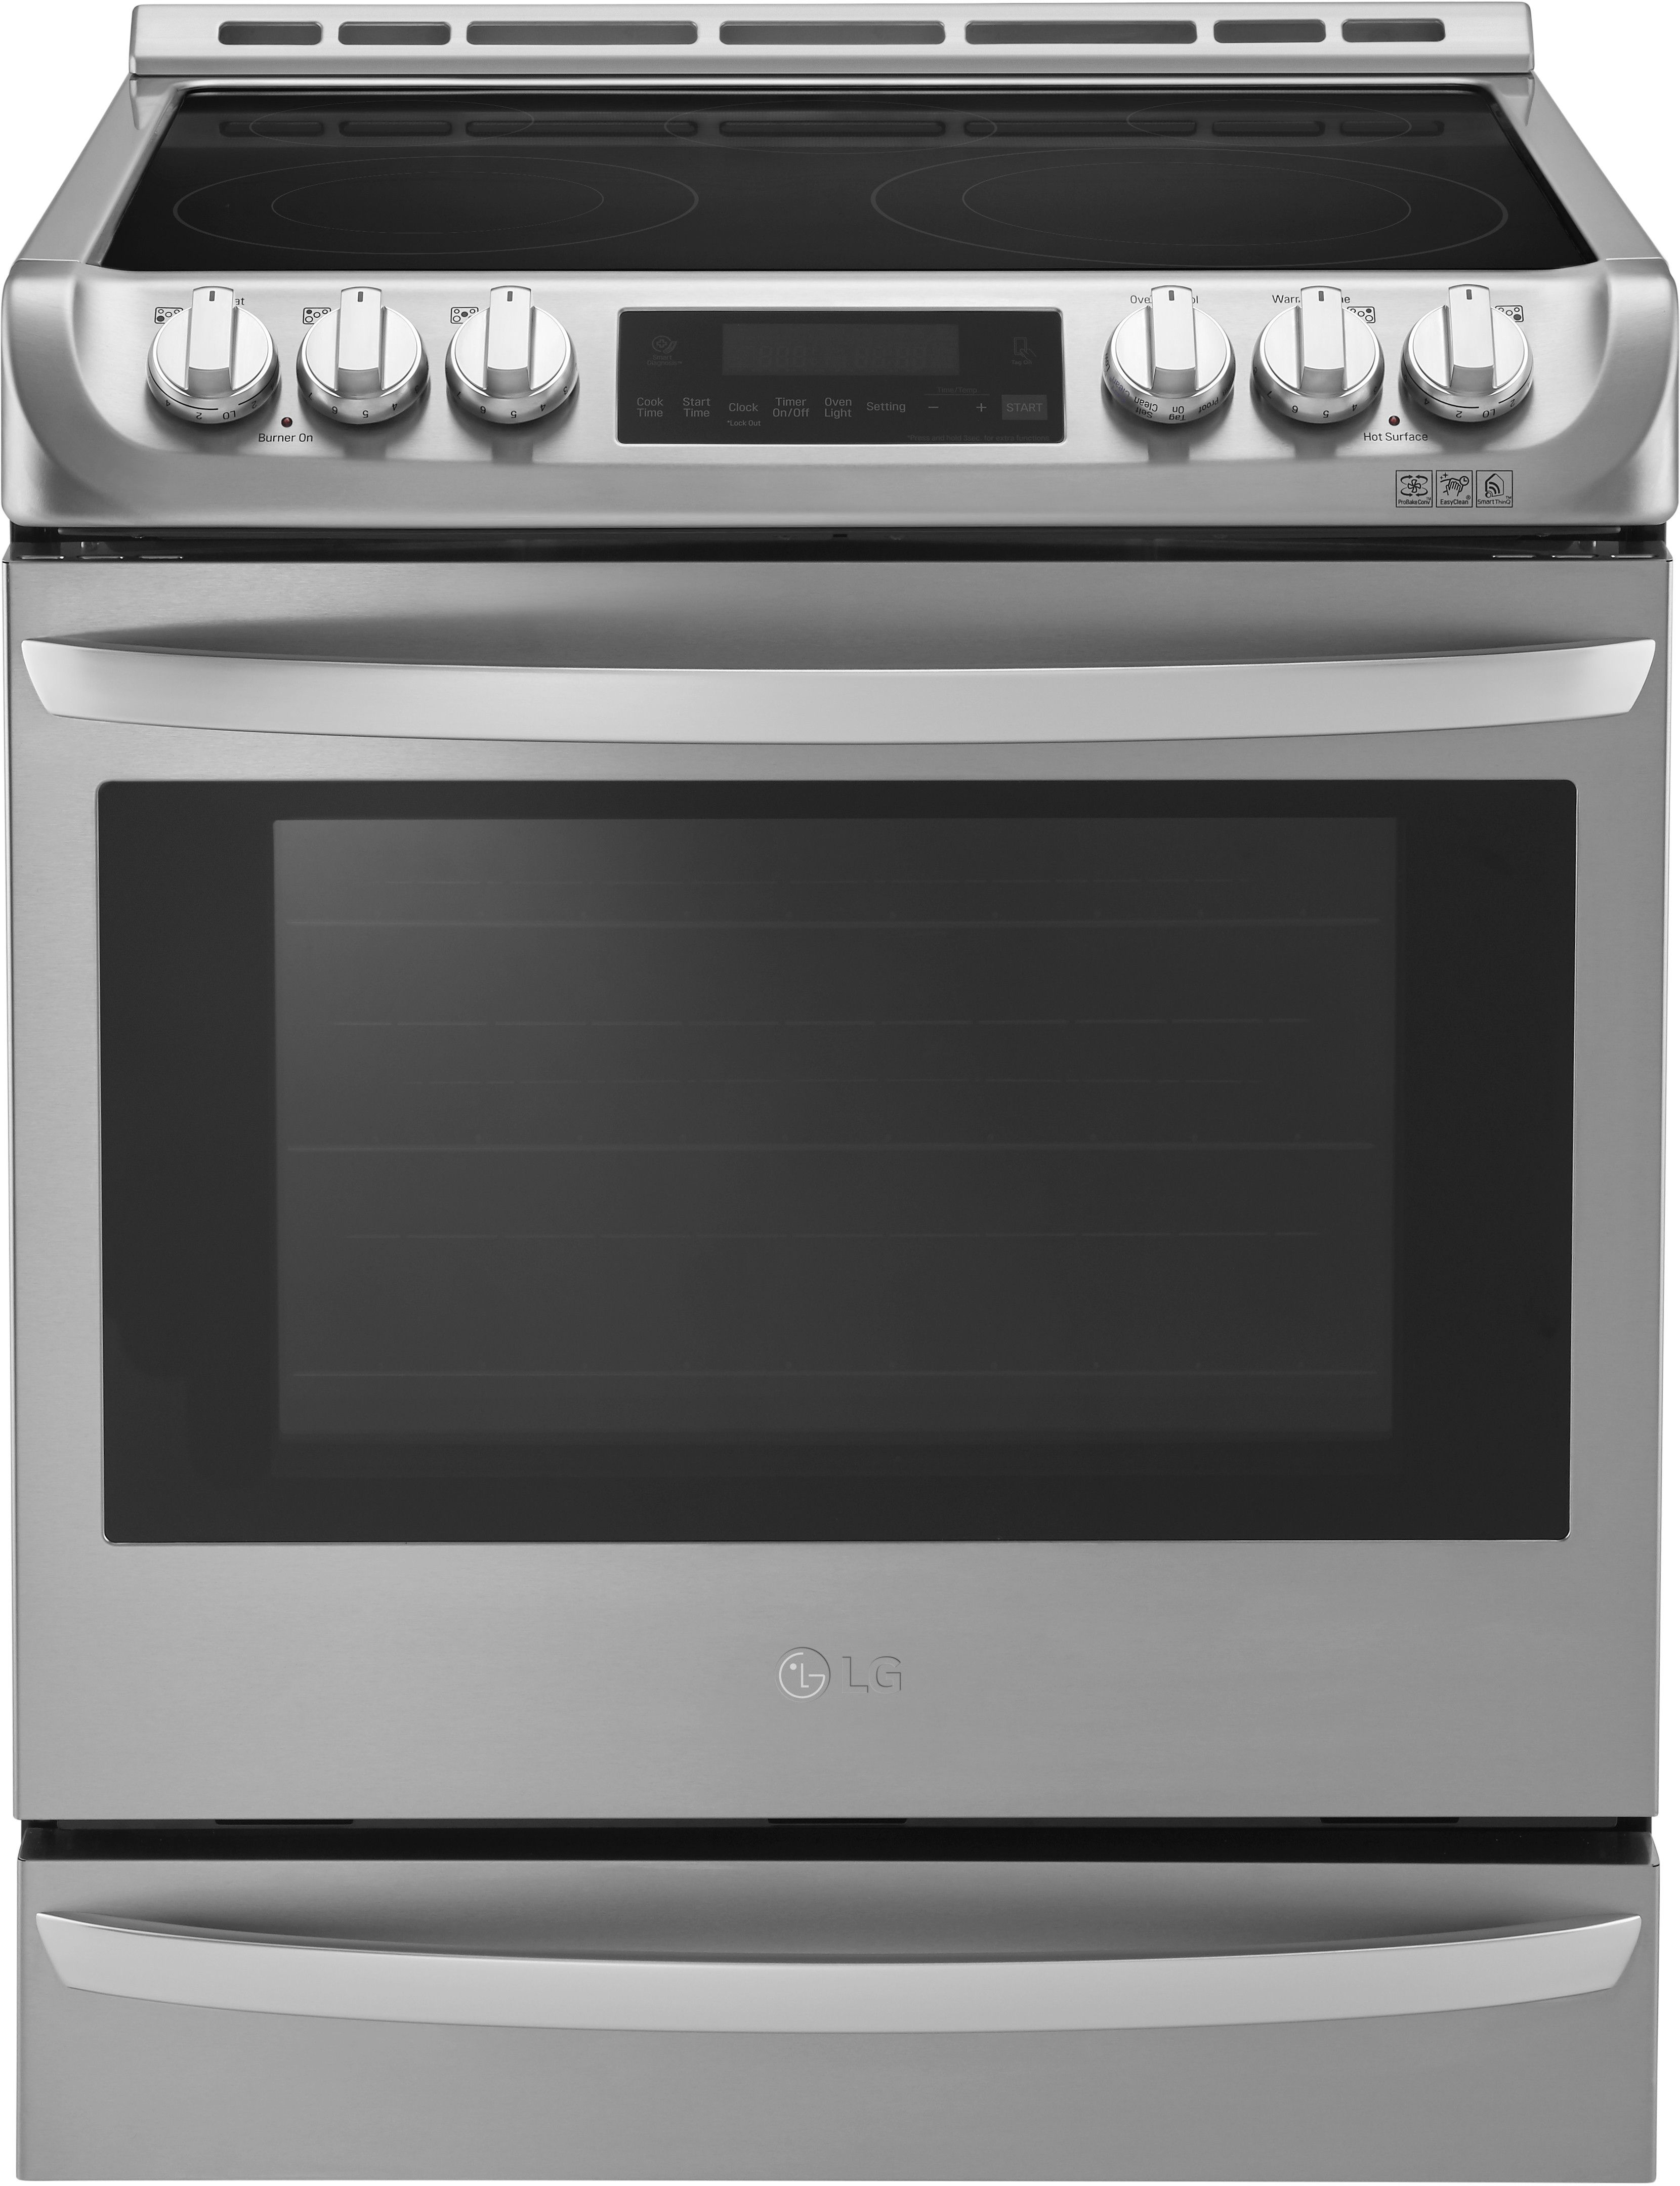 Electric Range With Microwave Drawer Stainless Steel